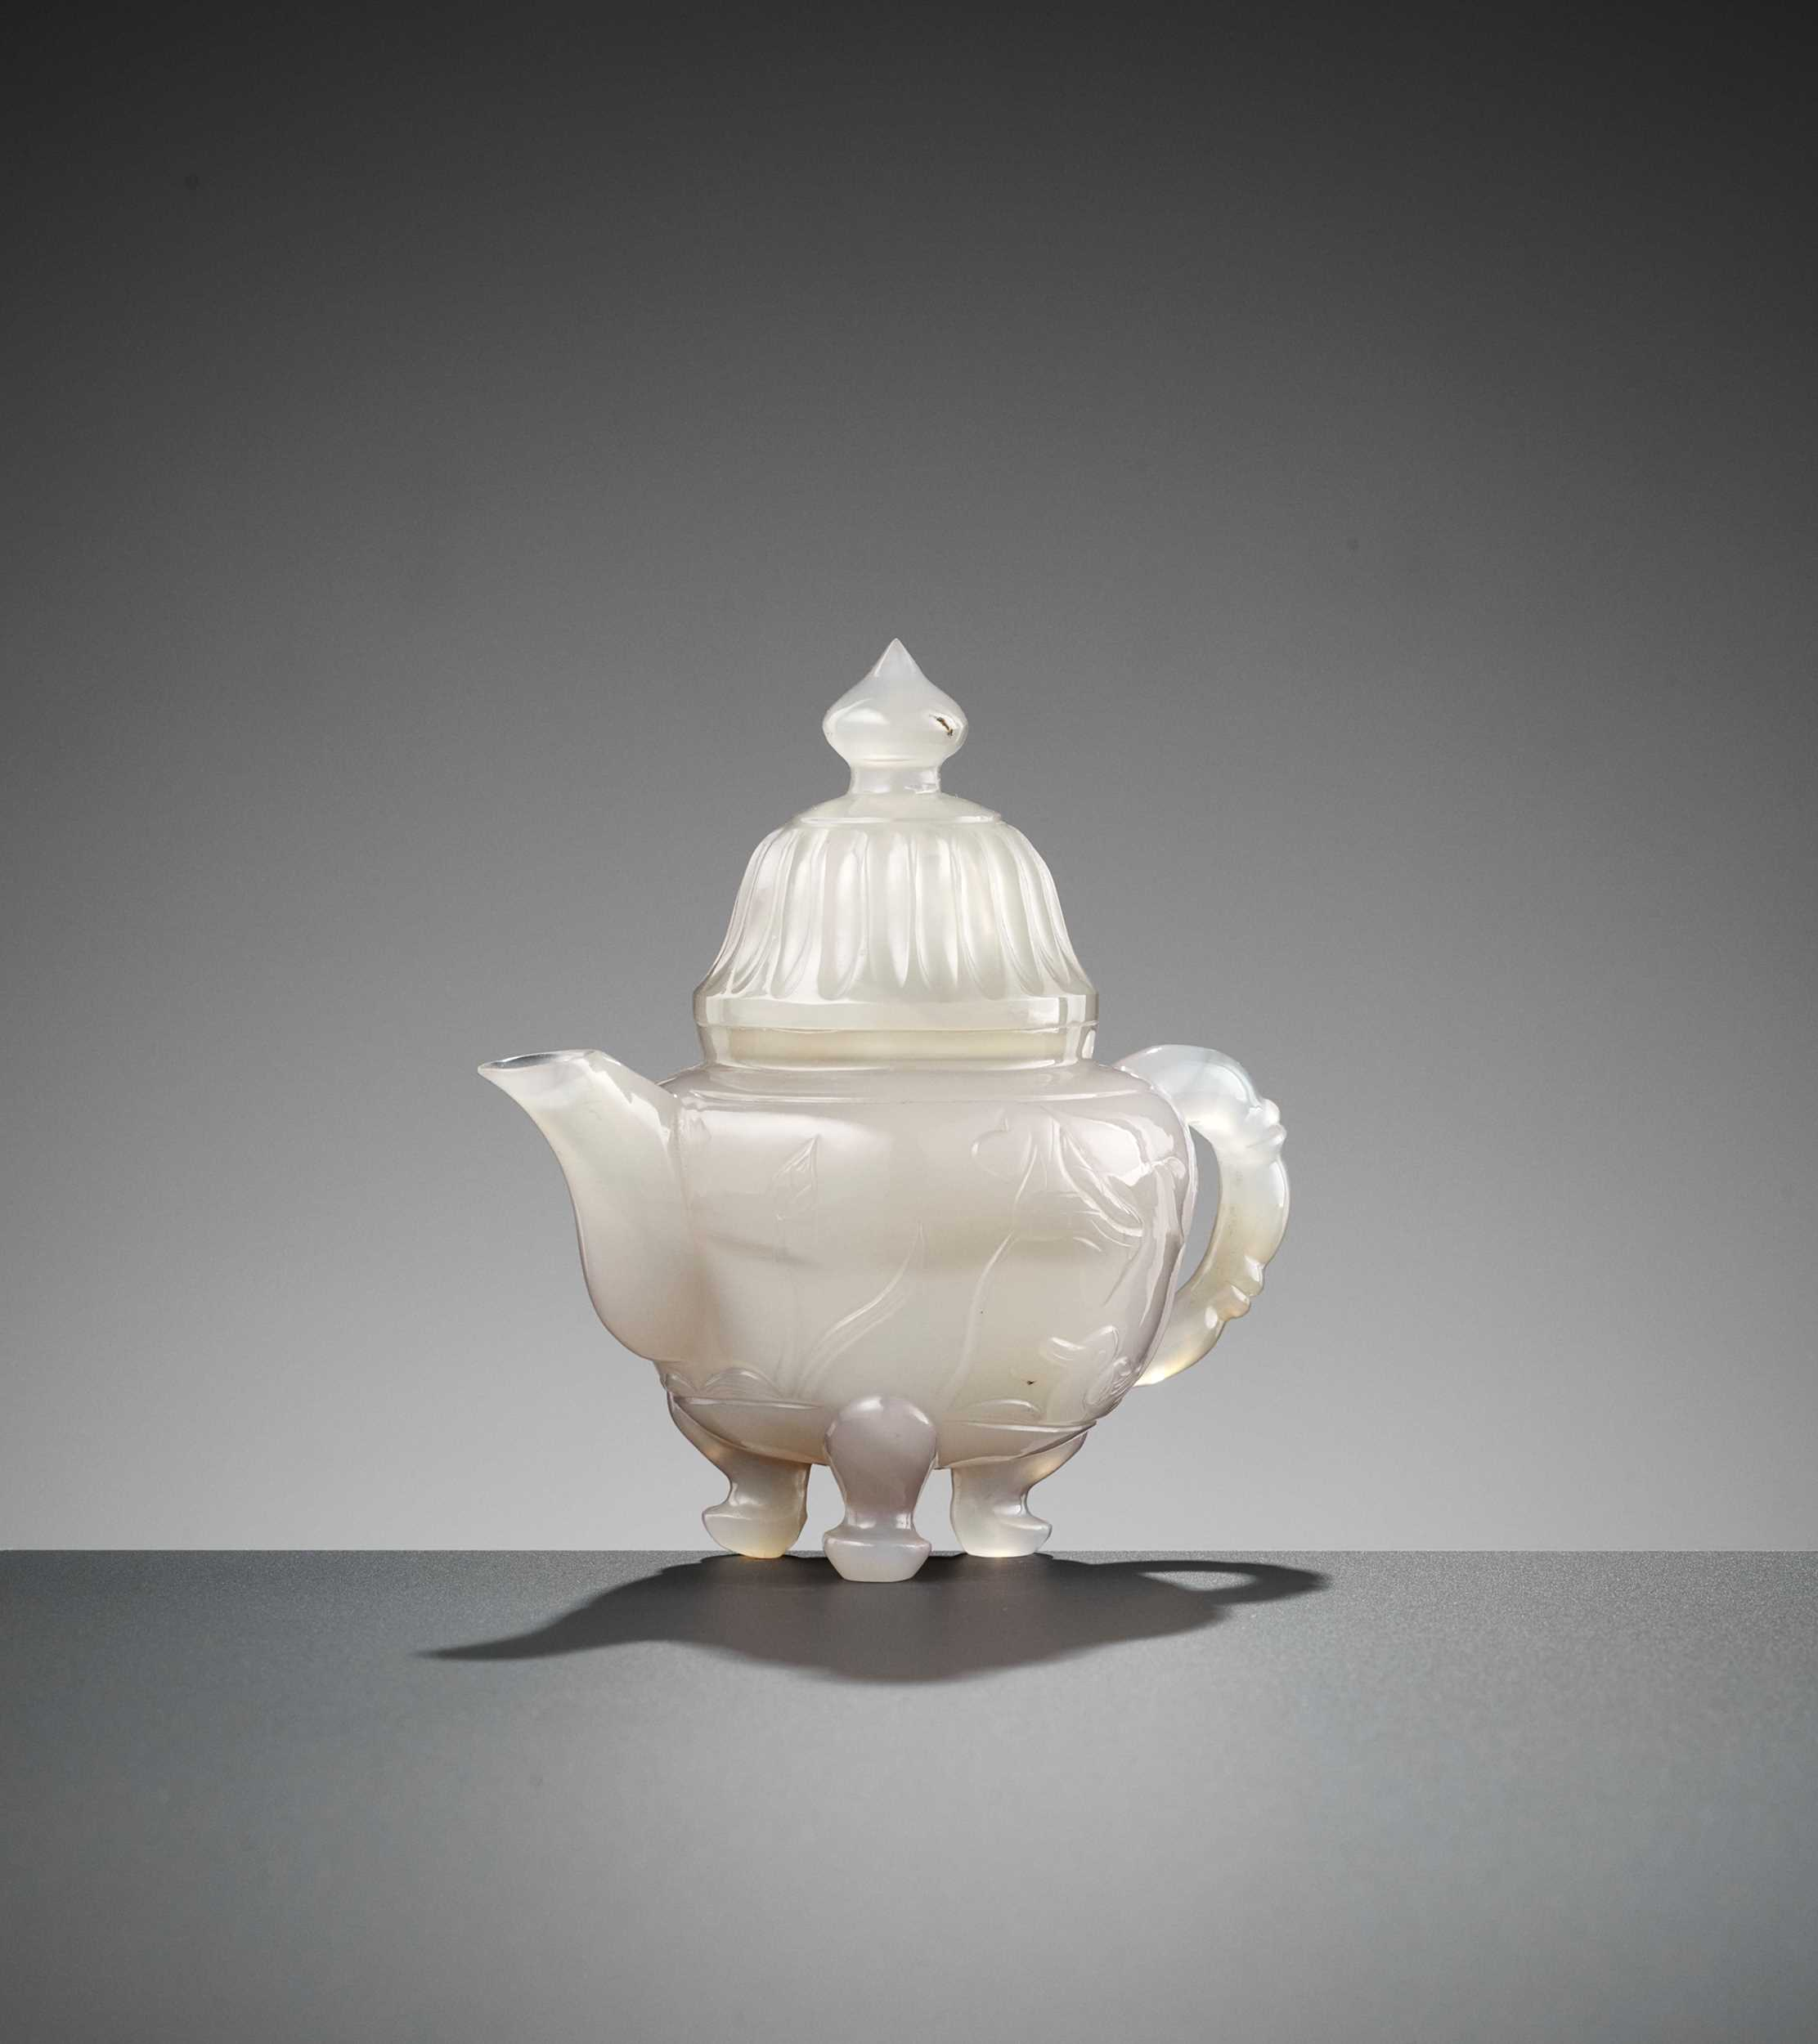 Lot 32 - A MUGHAL-STYLE AGATE EWER AND COVER, LATE QING TO REPUBLIC